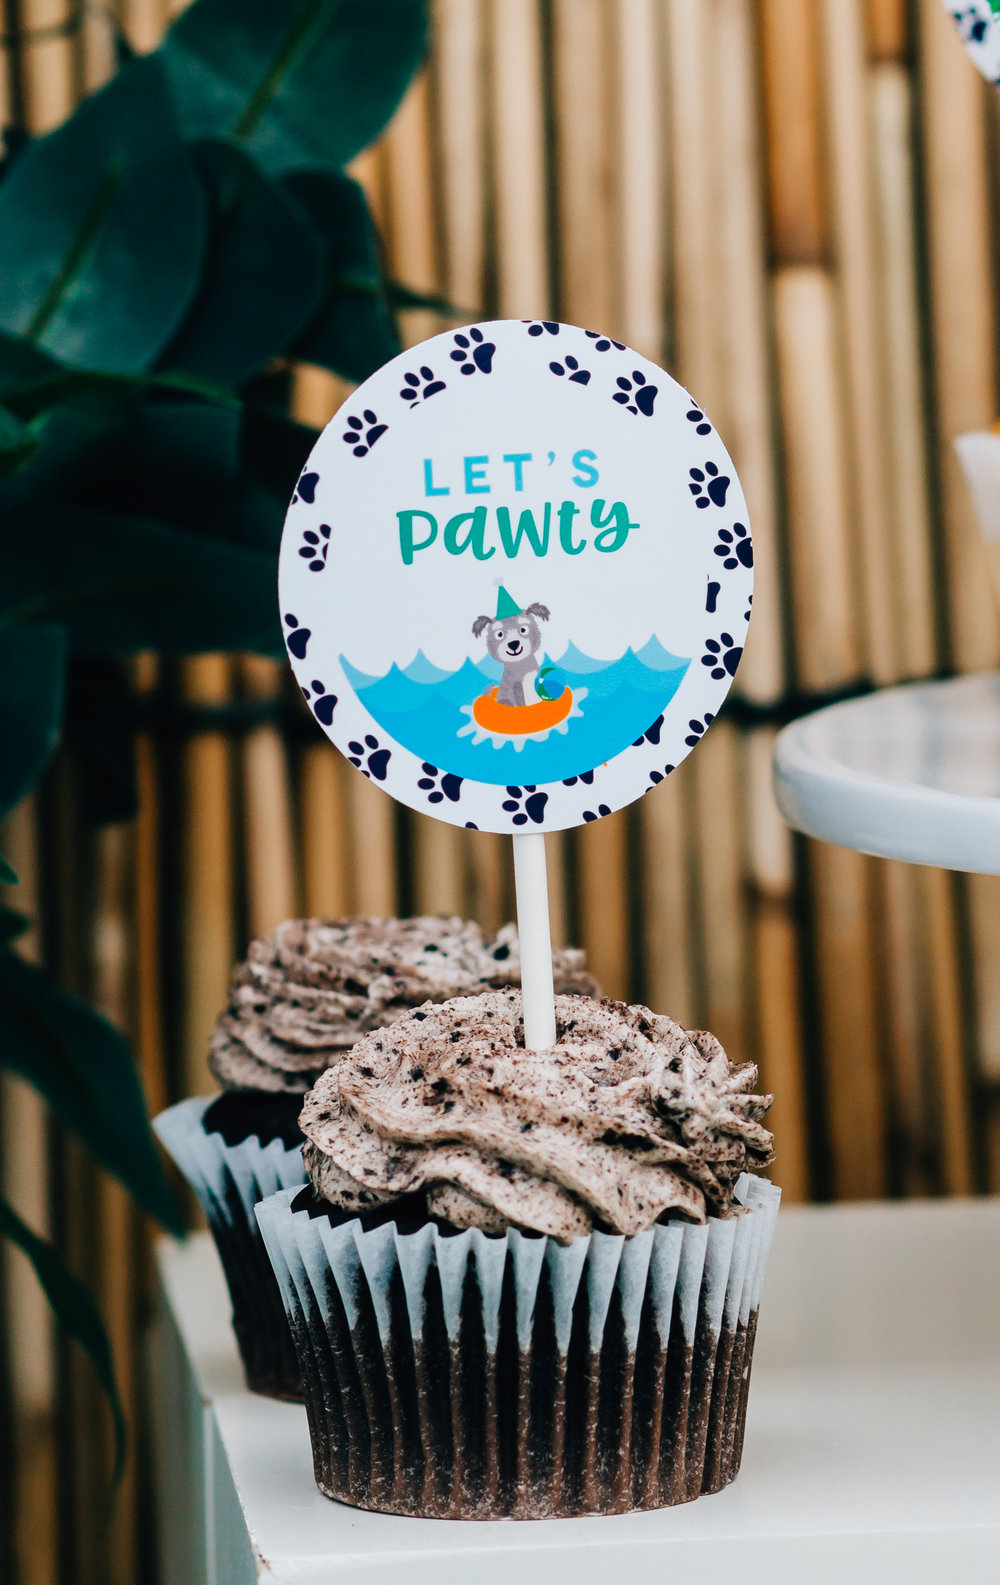 Let's Pawty at a tropical puppy party. Designs from MKKM Designs